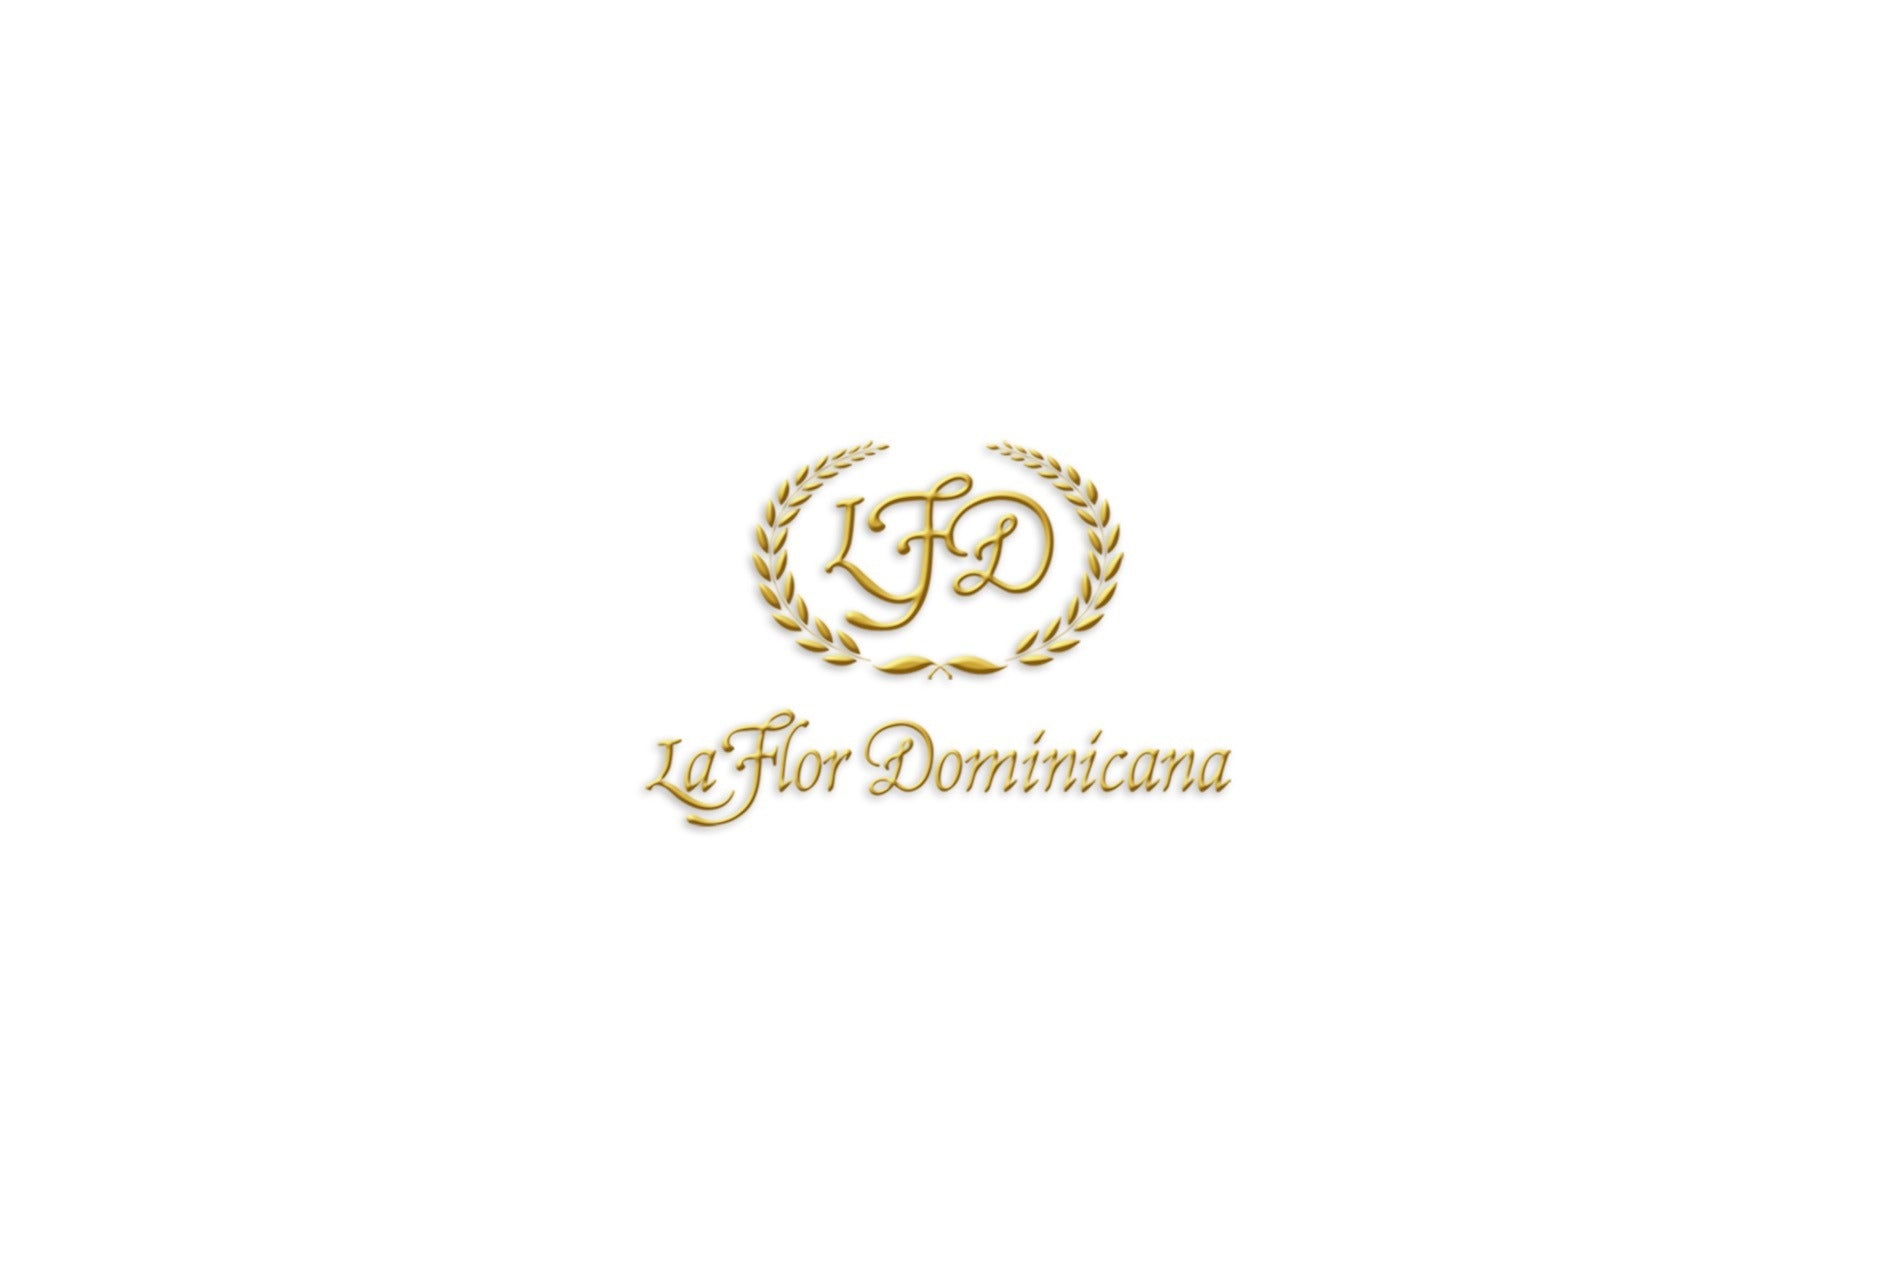 La Flor Dominicana Andalusian Bull (Limited Edition)